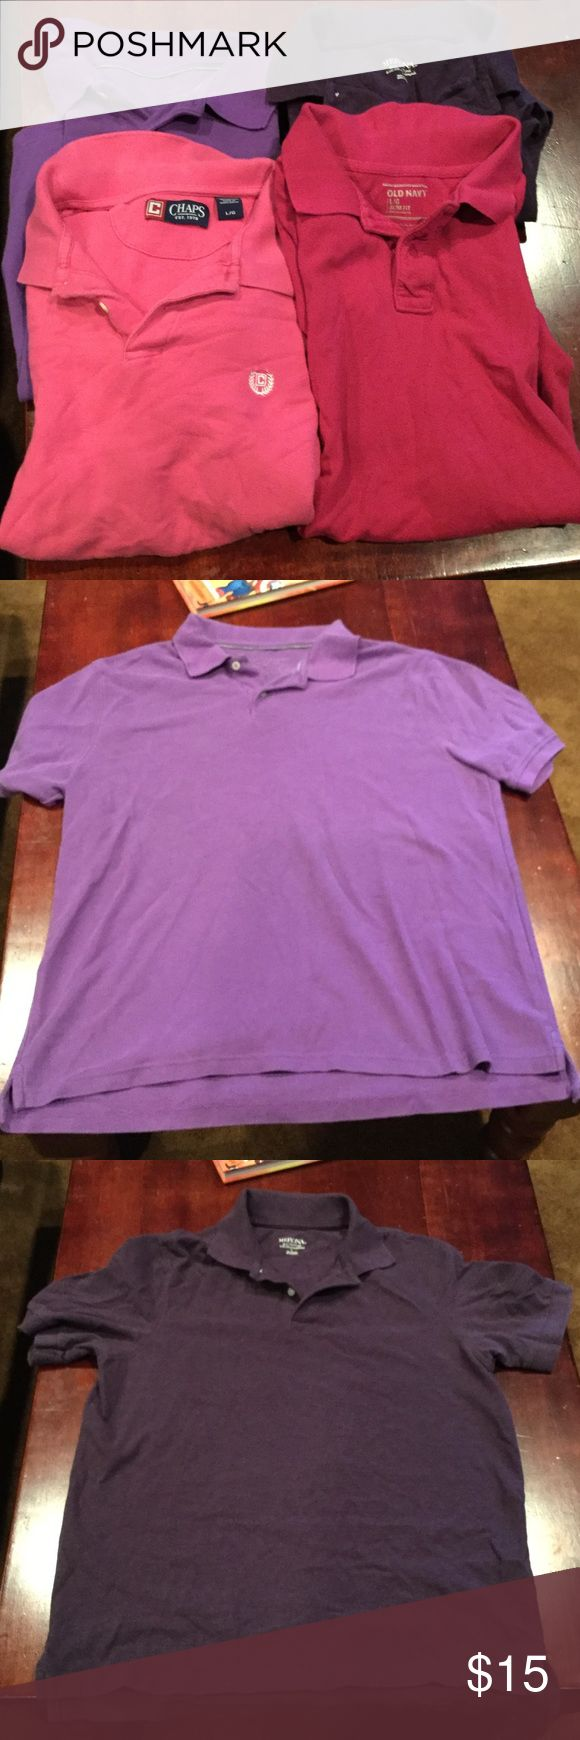 4 Large Polo Shirts 1 pink Chaps polo.  1 pink Old Navy Slim Fit polo.  1 purple Merona polo. 1 lite purple polo. Great condition. No holes or stains Chaps Shirts Polos